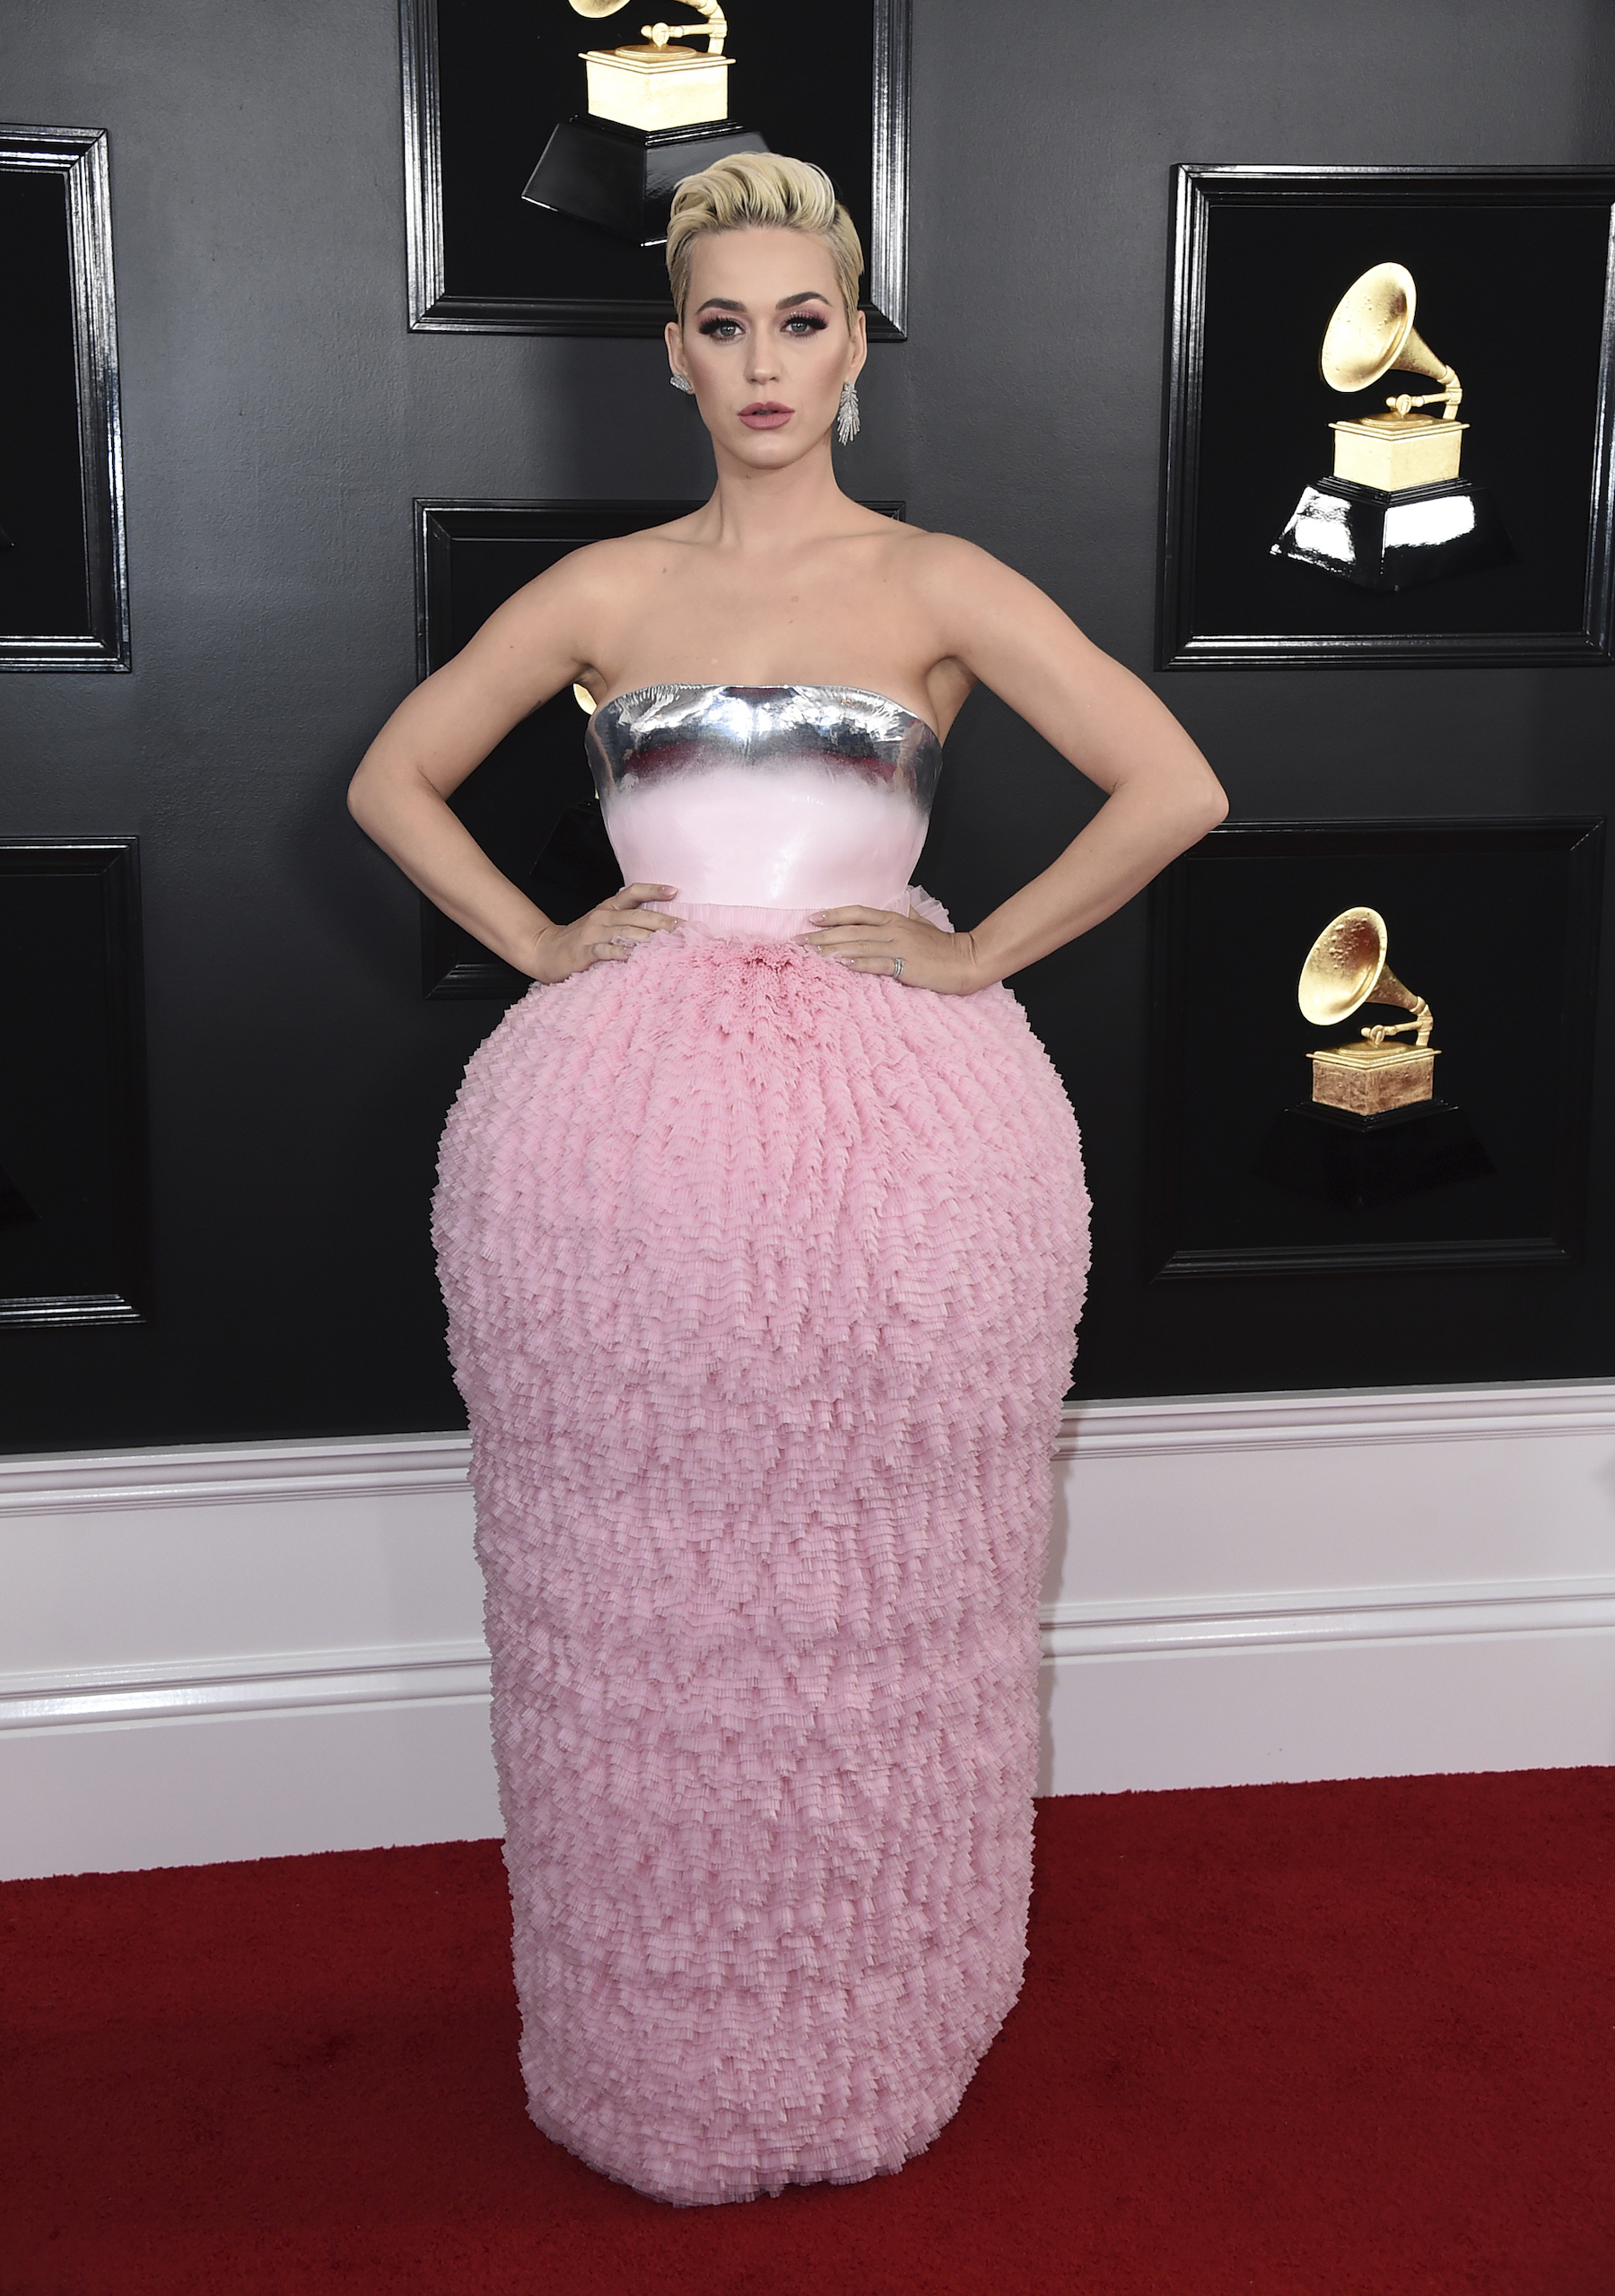 "<div class=""meta image-caption""><div class=""origin-logo origin-image ap""><span>AP</span></div><span class=""caption-text"">Katy Perry arrives at the 61st annual Grammy Awards at the Staples Center on Sunday, Feb. 10, 2019, in Los Angeles. (Jordan Strauss/Invision/AP)</span></div>"